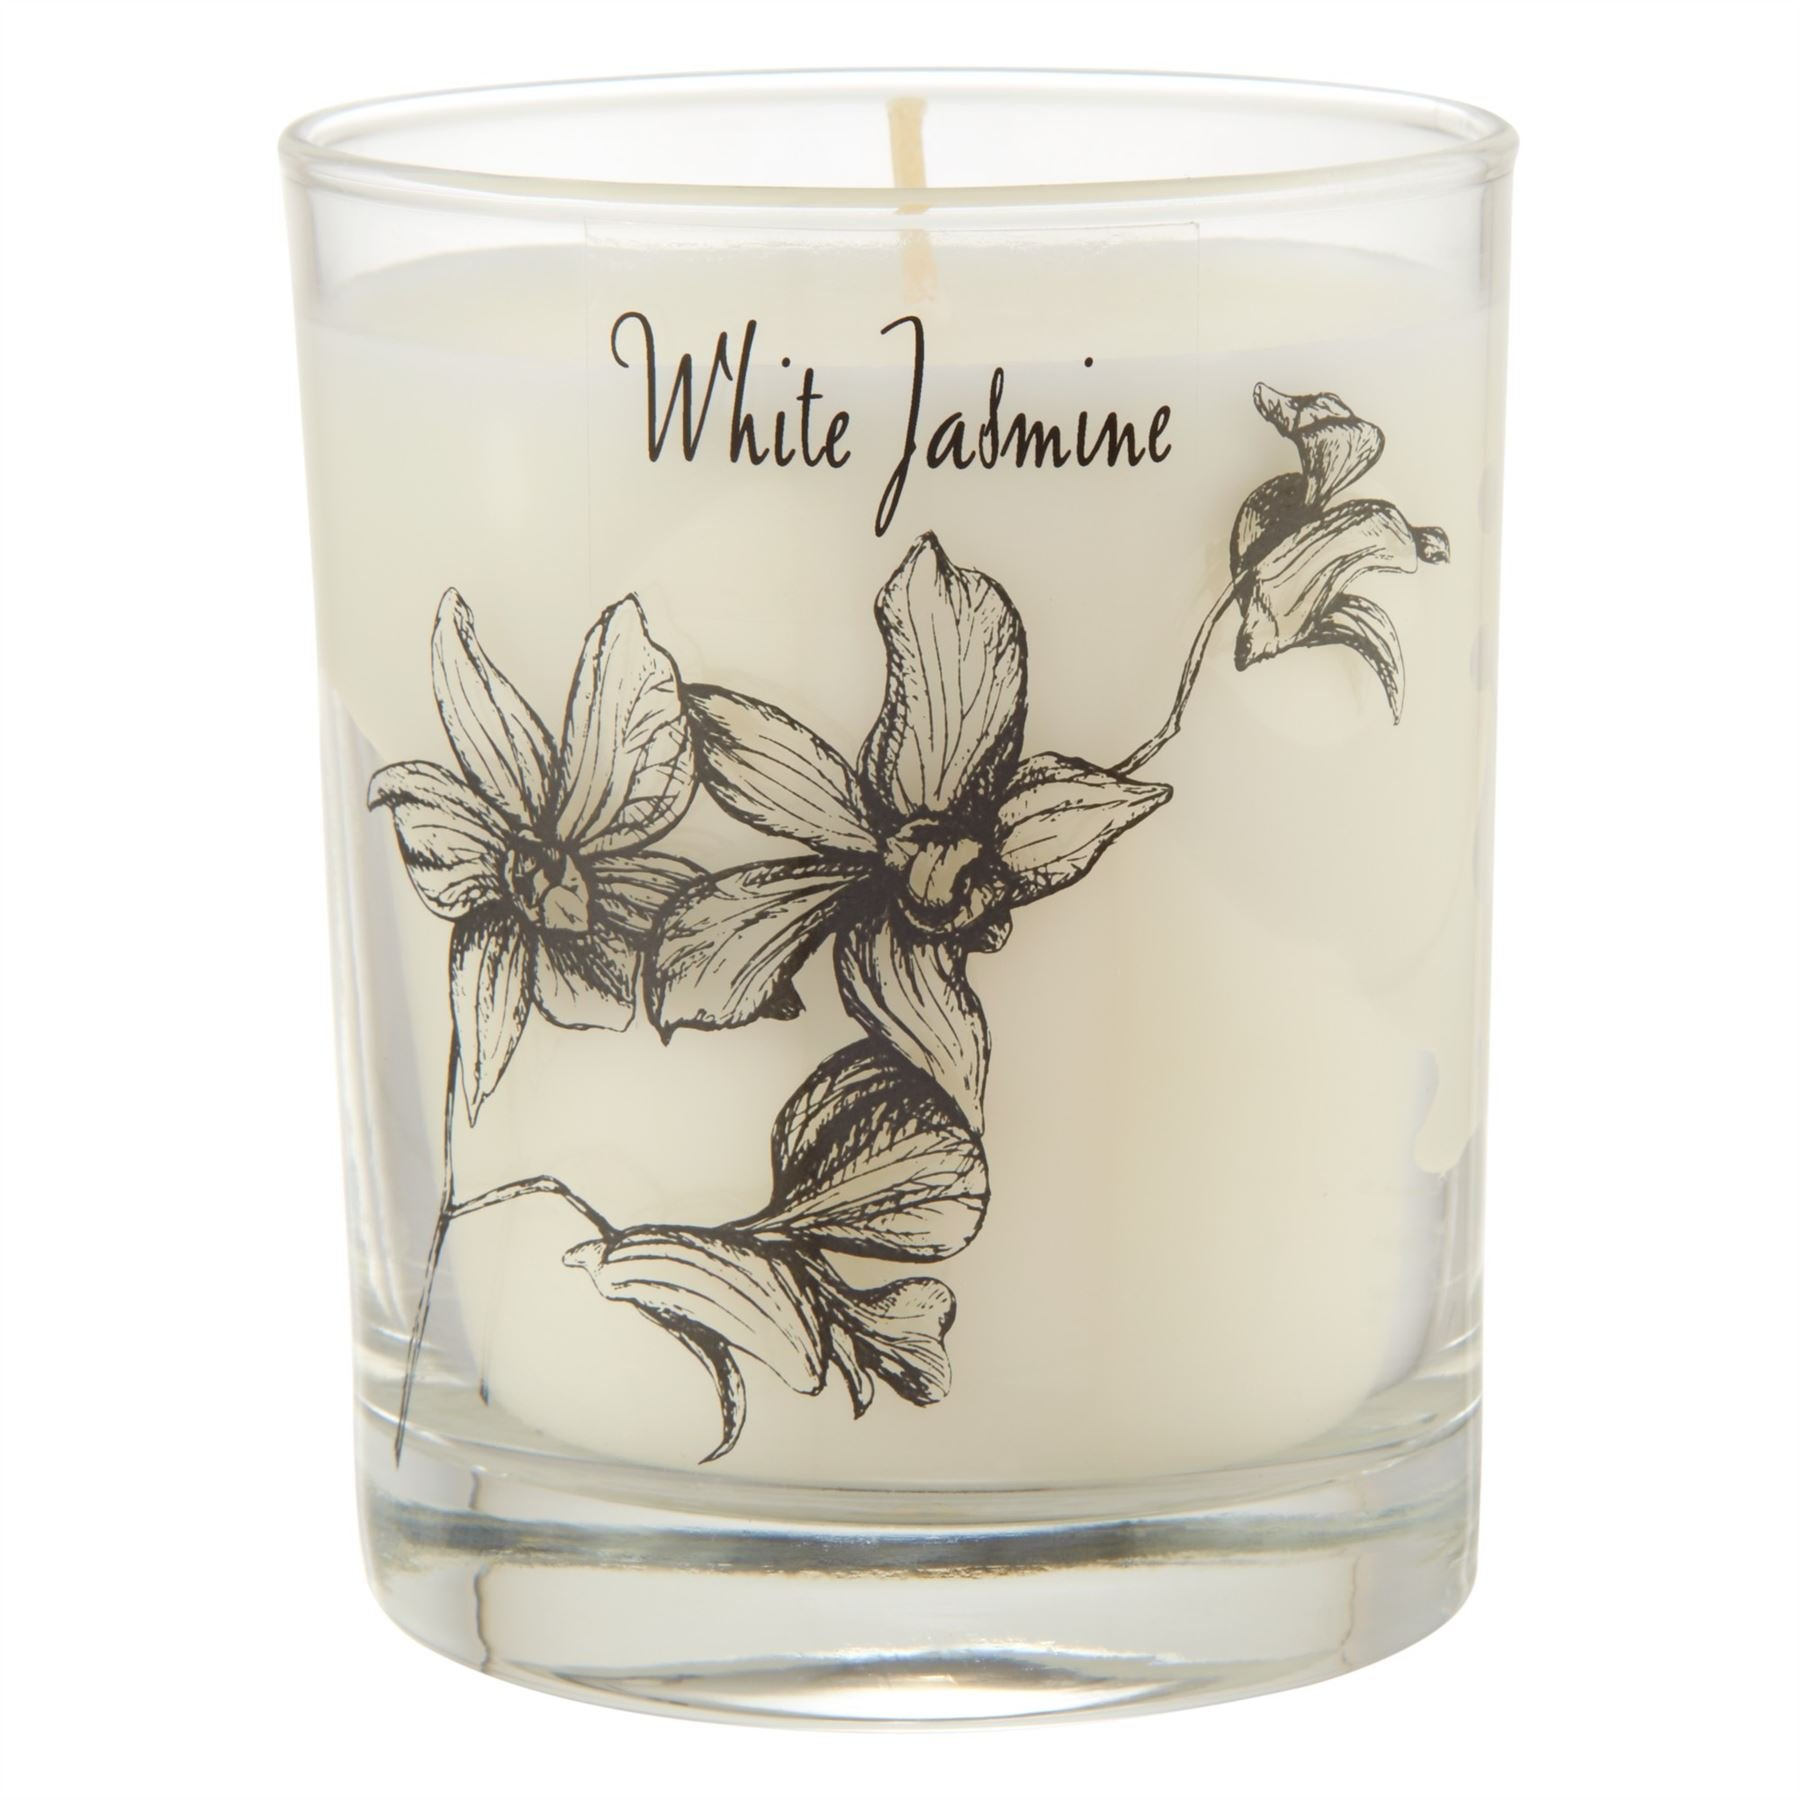 Stoneglow Scented Candle in a Jar Jasmine - Pack of 6